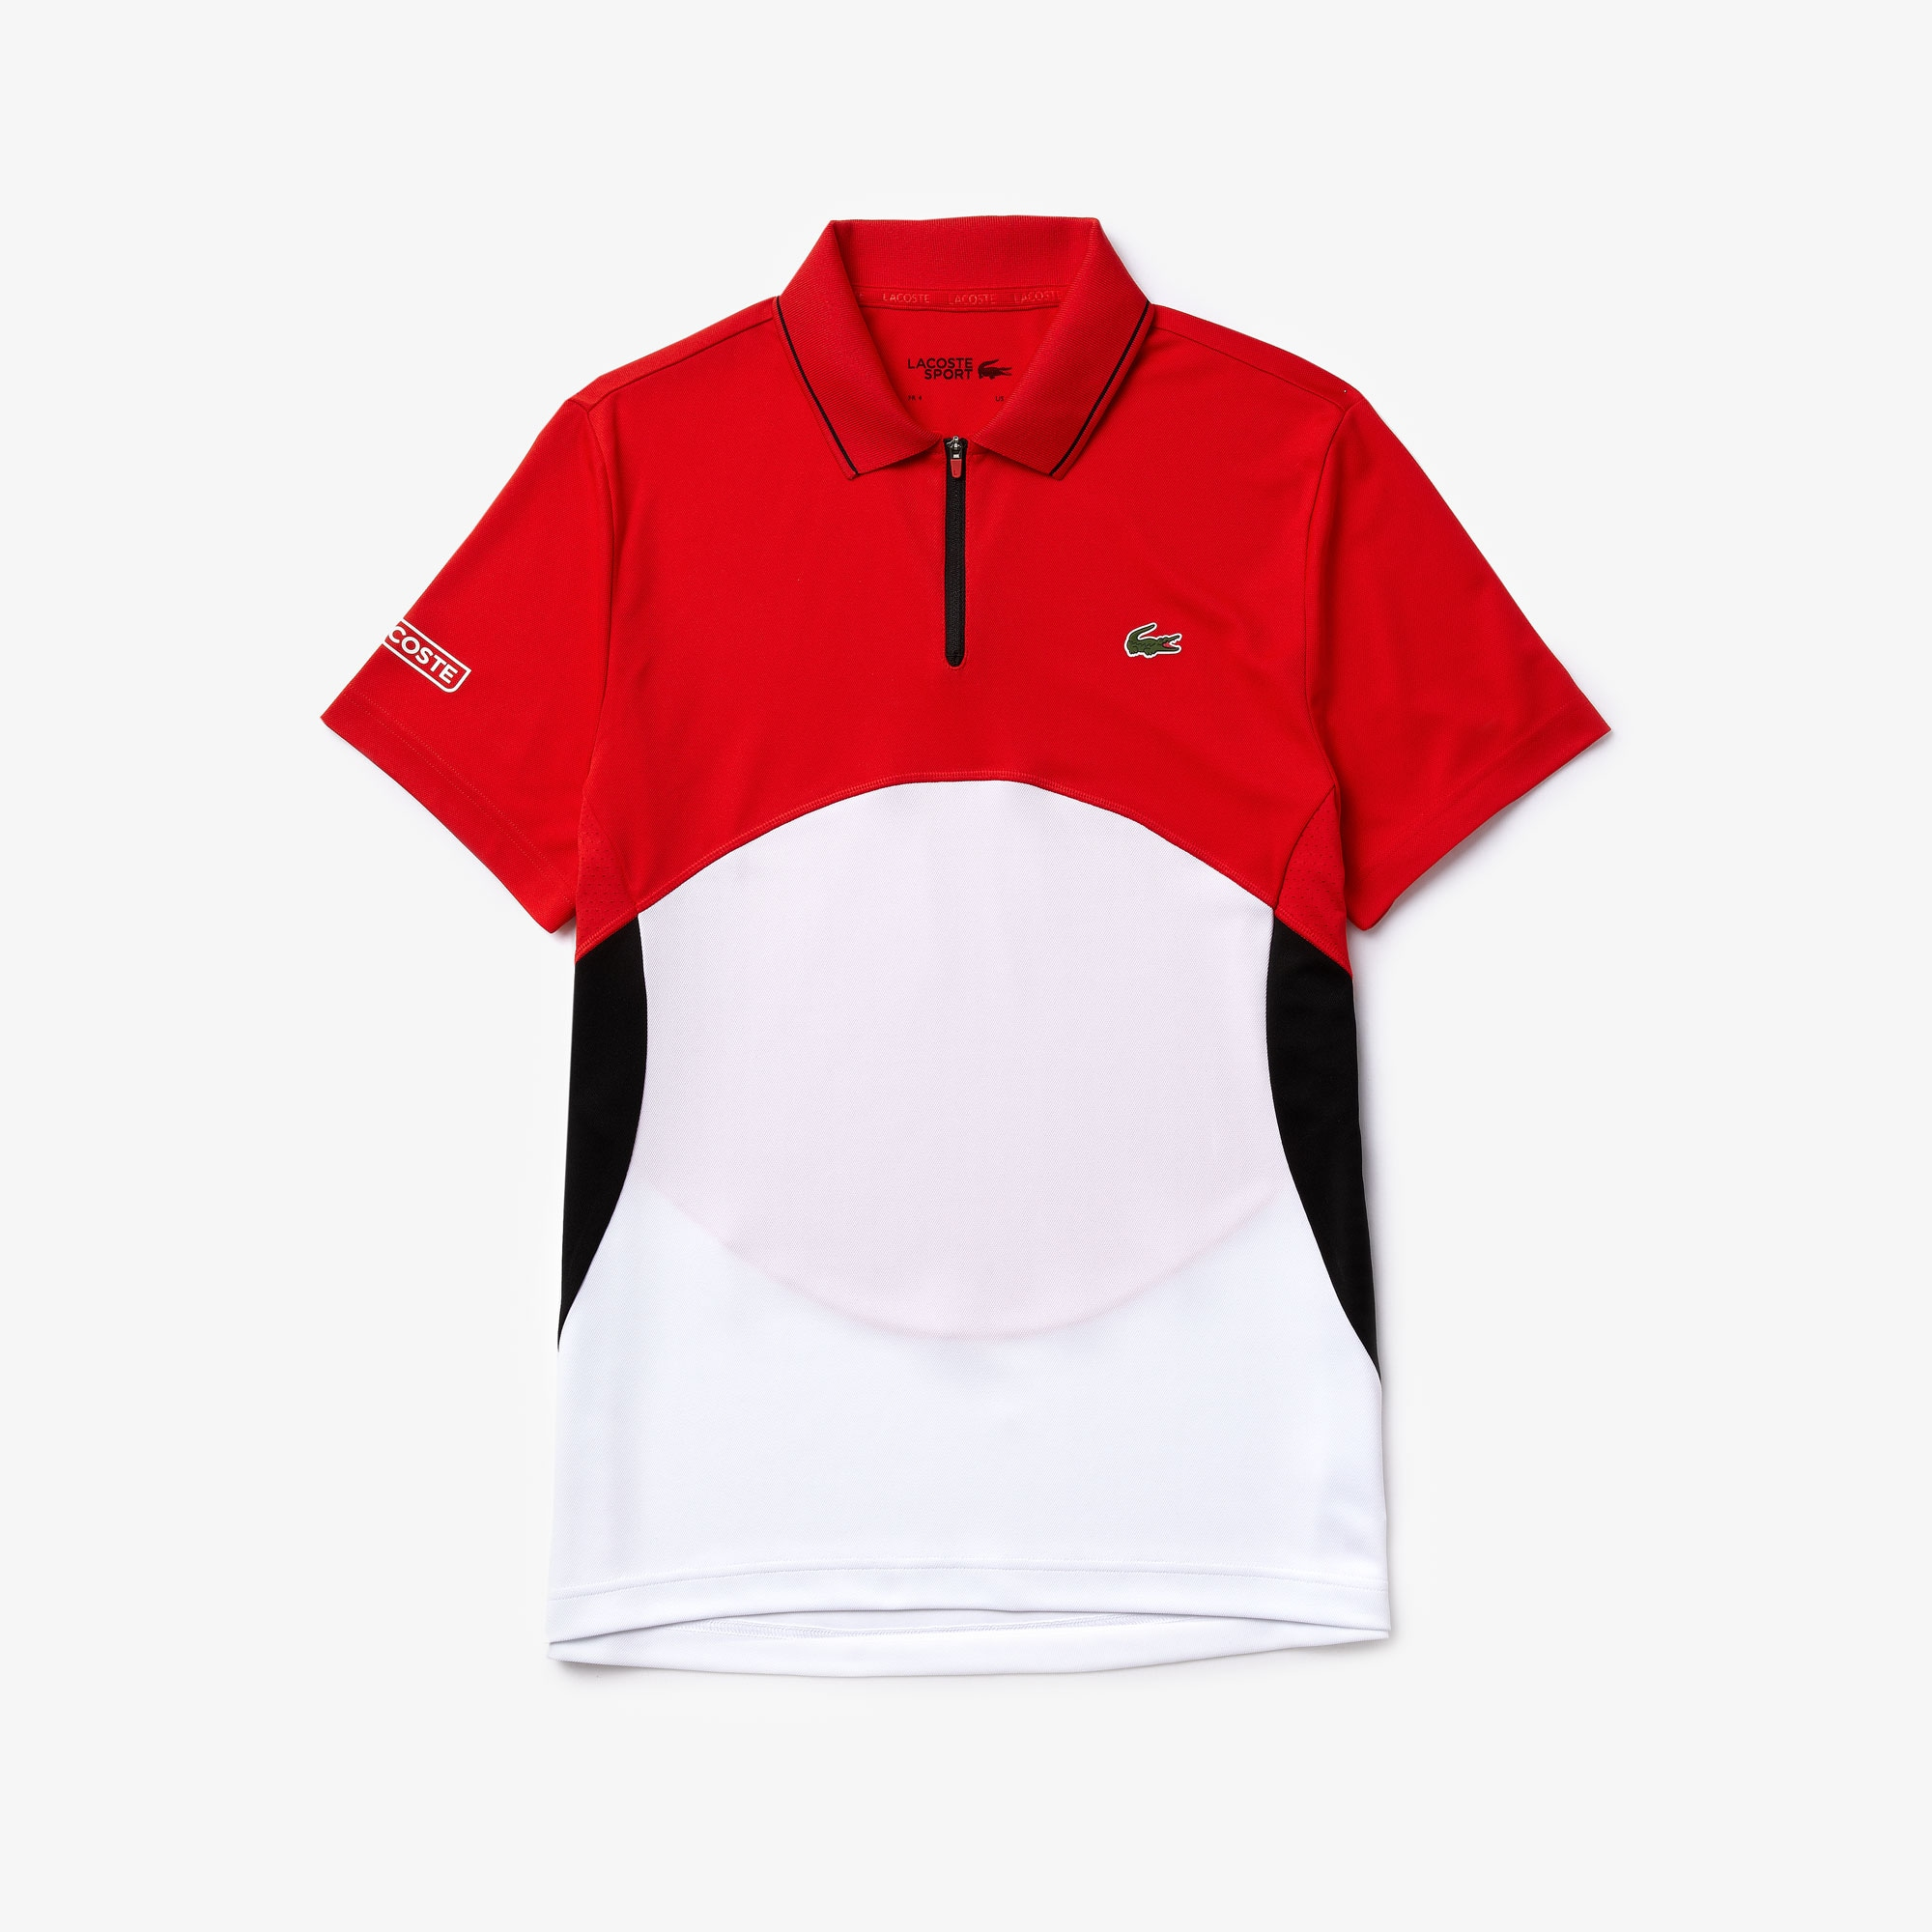 Lacoste Ultra Polo Size Medium M Blue White Red